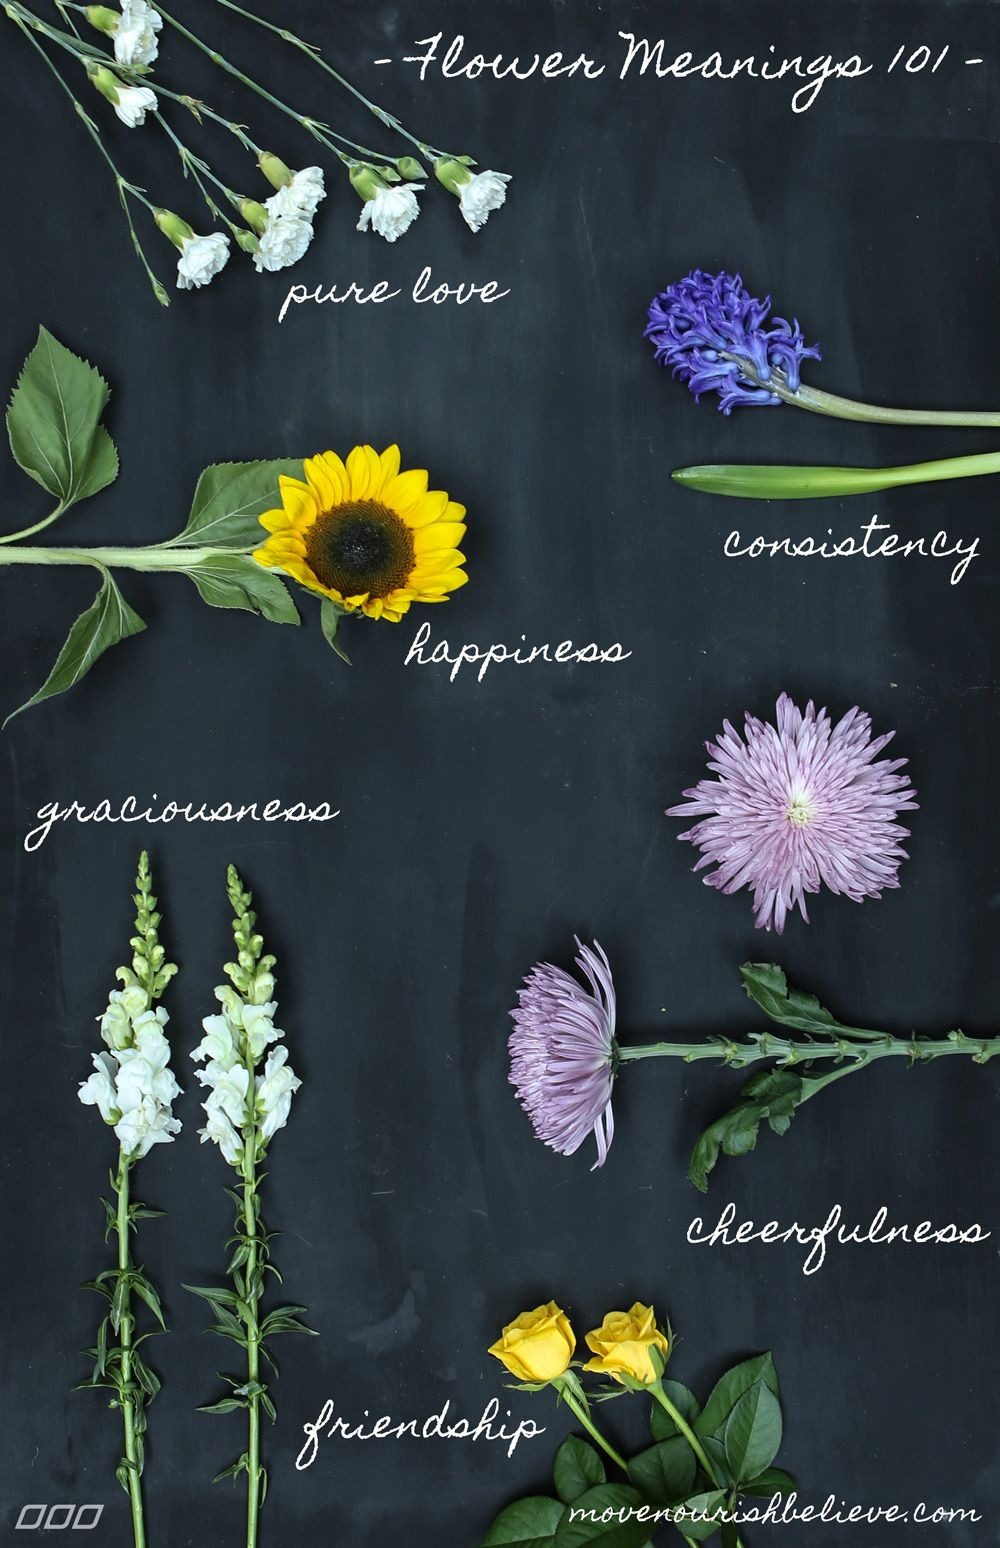 Flower meanings decoded the secrets of your favourite bloom home flower meanings decoded the secrets of your favourite bloom move nourish believe izmirmasajfo